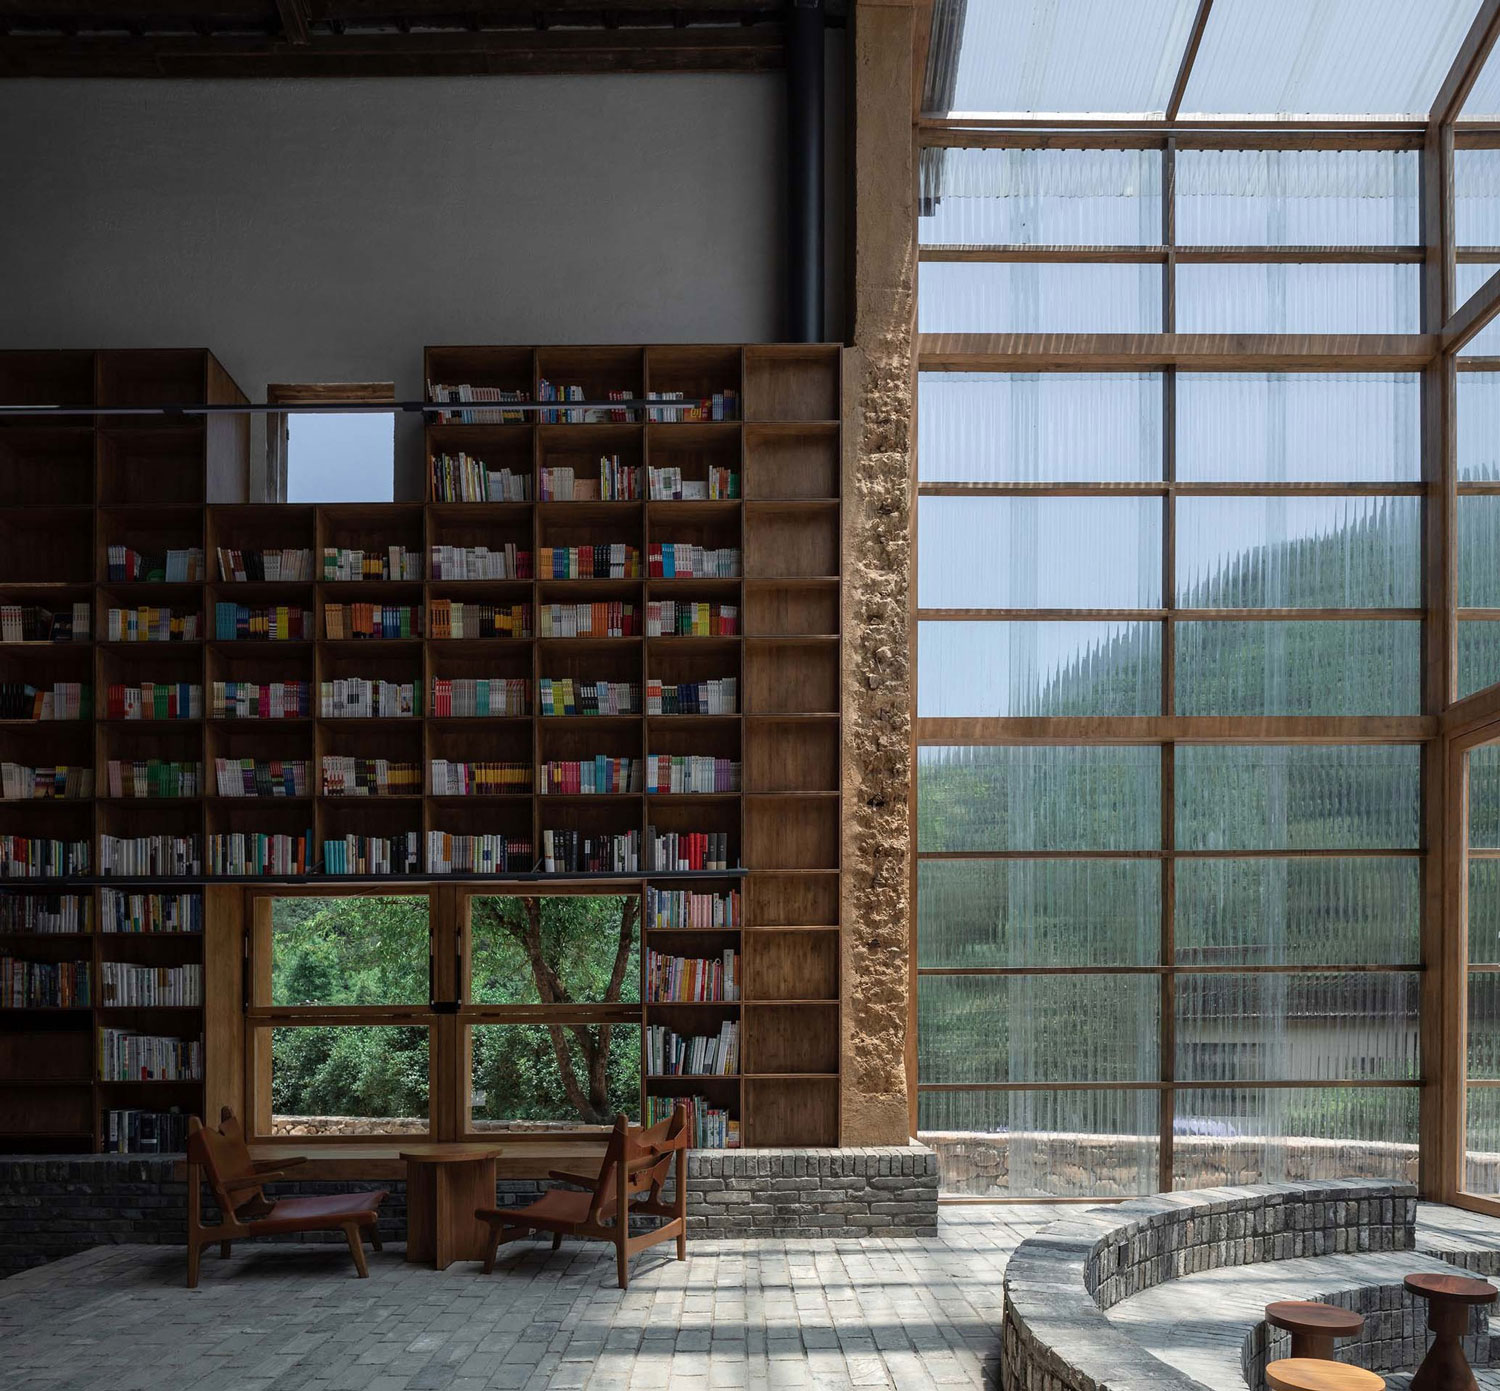 Capsule Hotel Library Zhejiang Province China By Atelier Tao C Yellowtrace 03